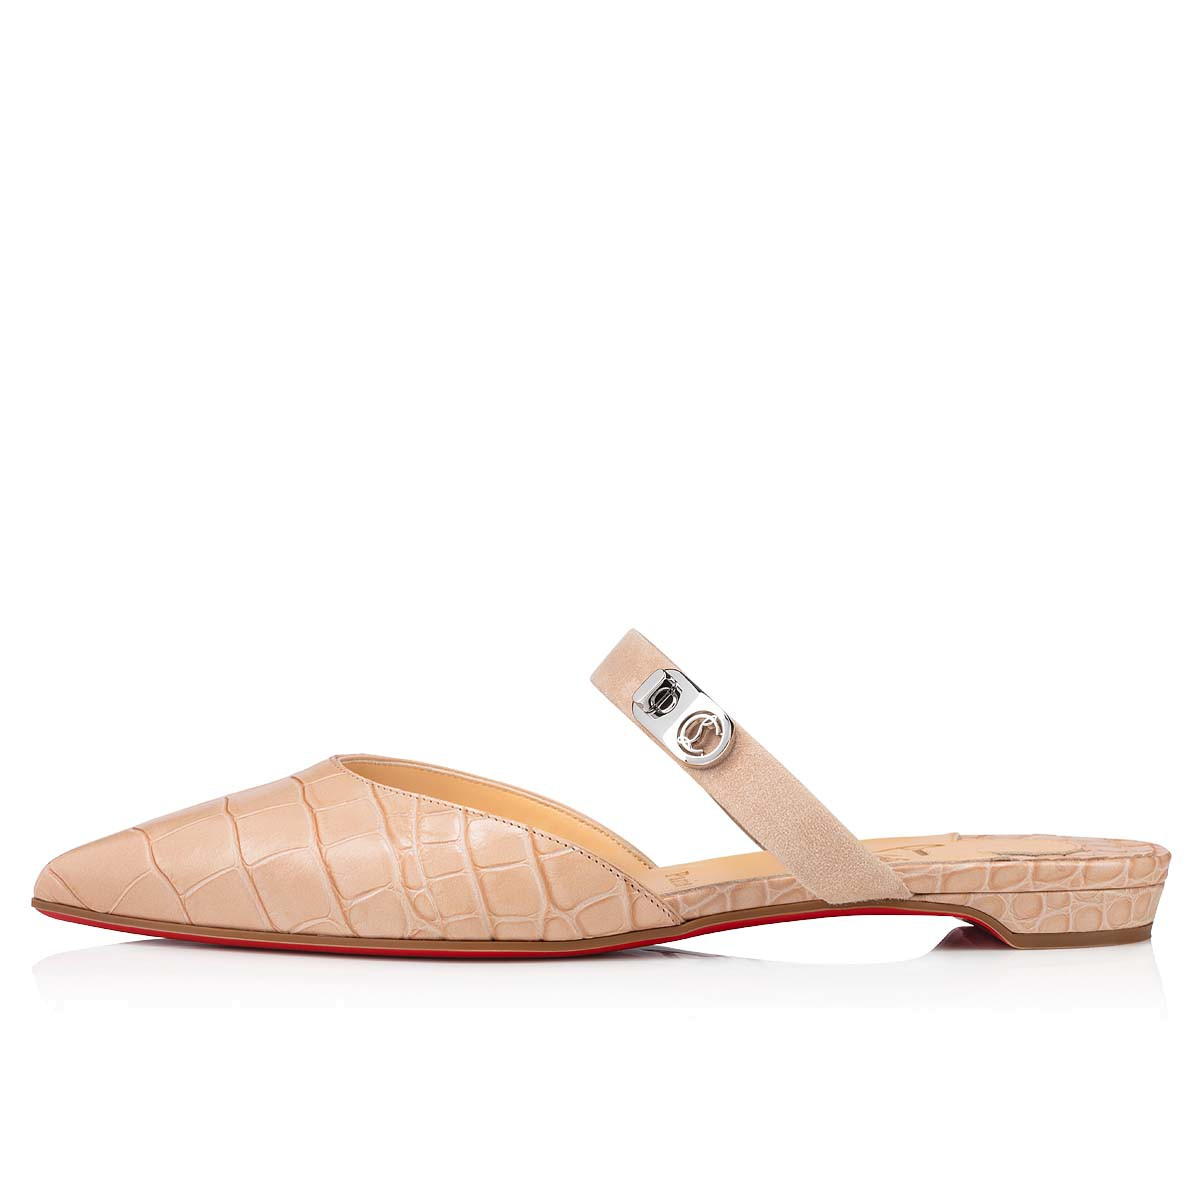 Shoes - Choc Lock Flat - Christian Louboutin